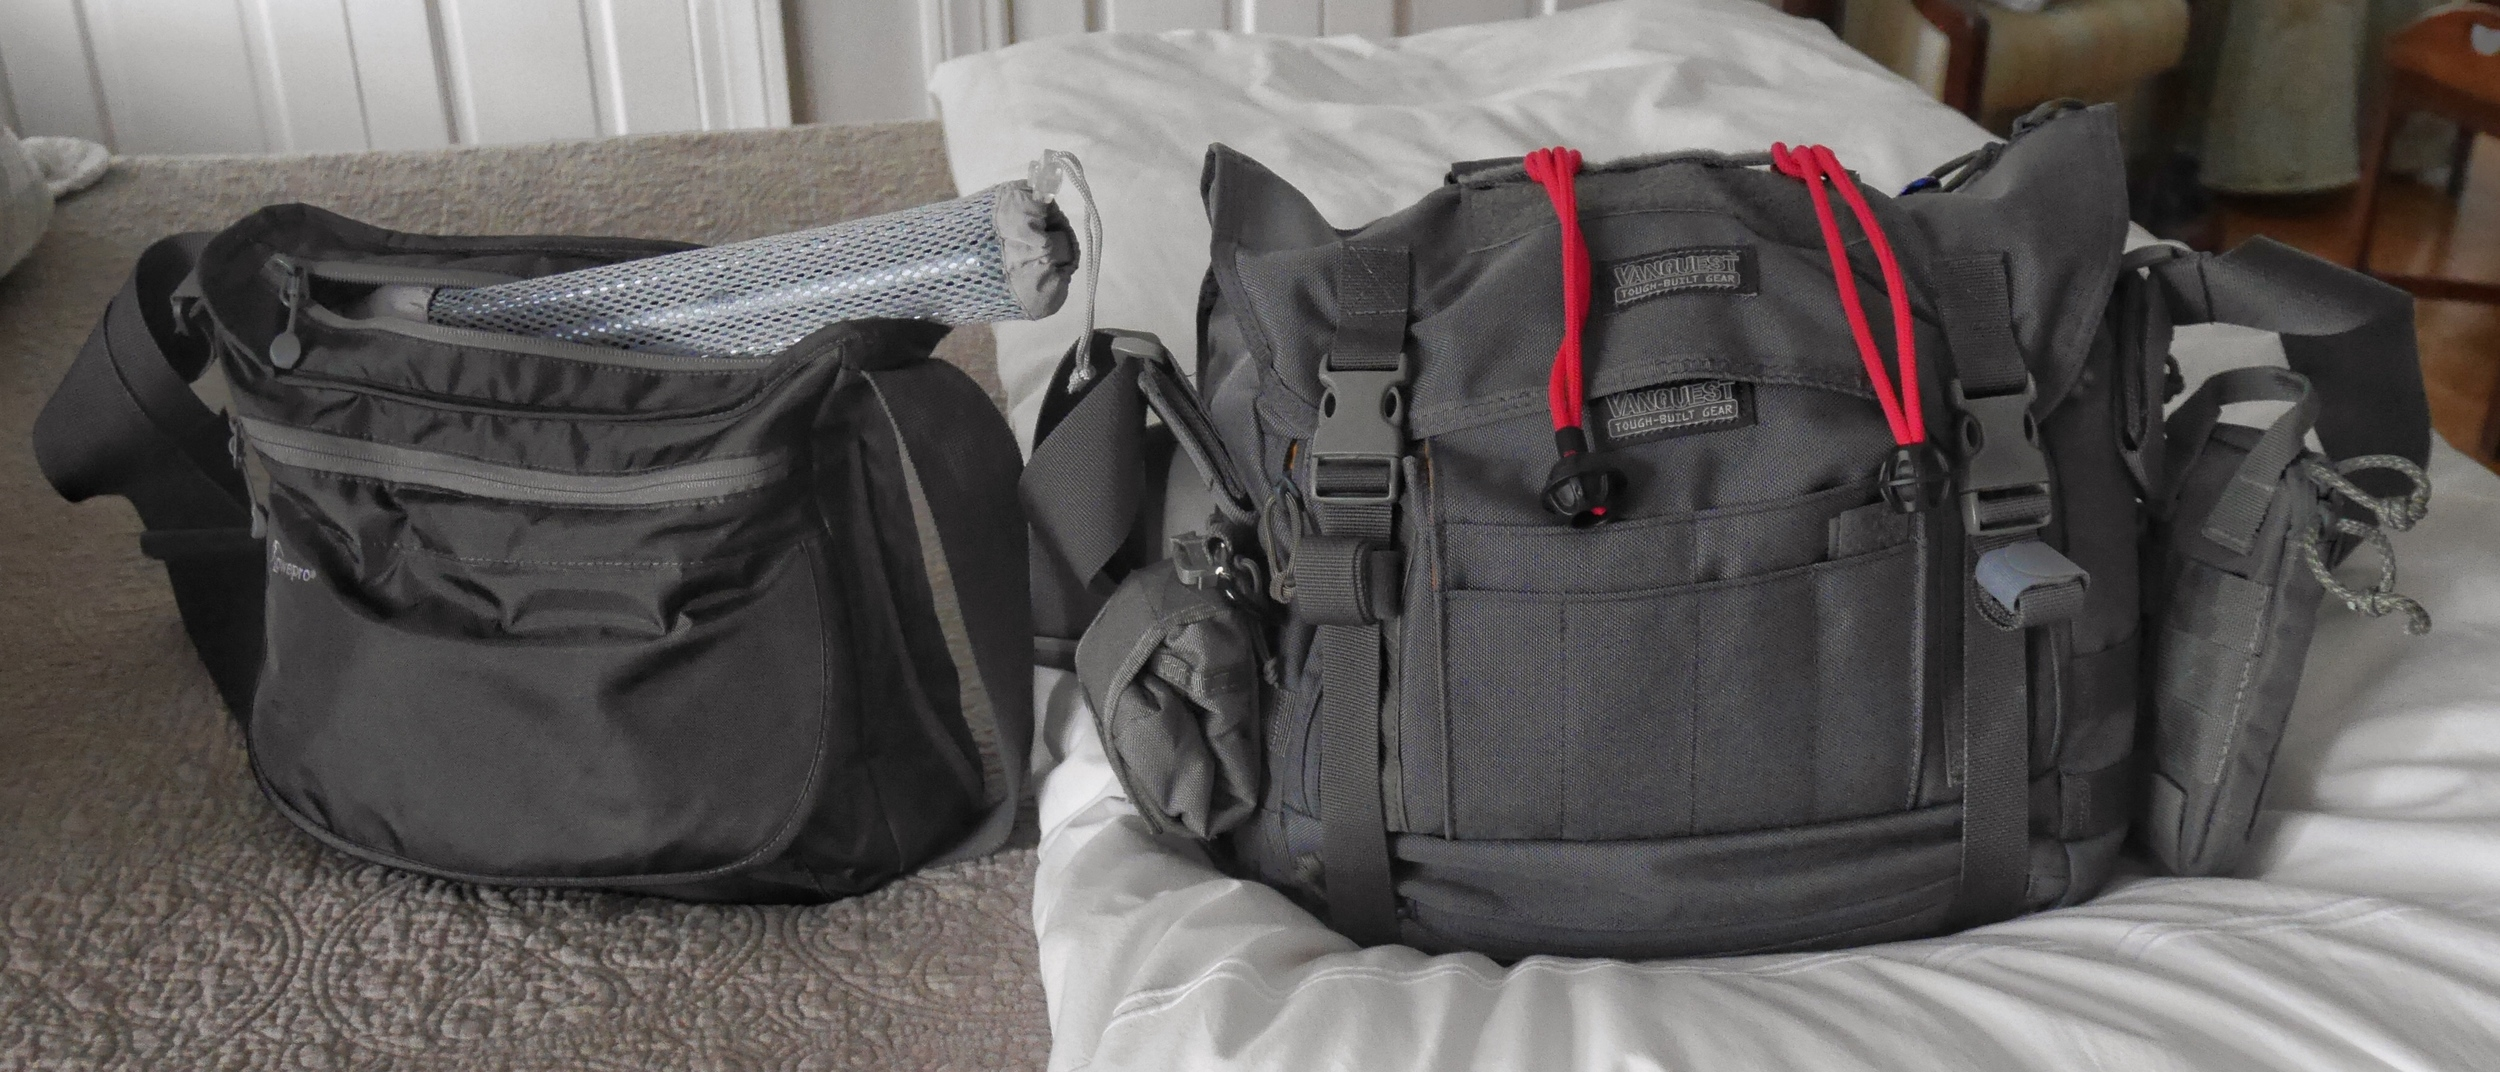 Lowepro Streamline 250 and Vanquest SKITCH-12 ready to go!